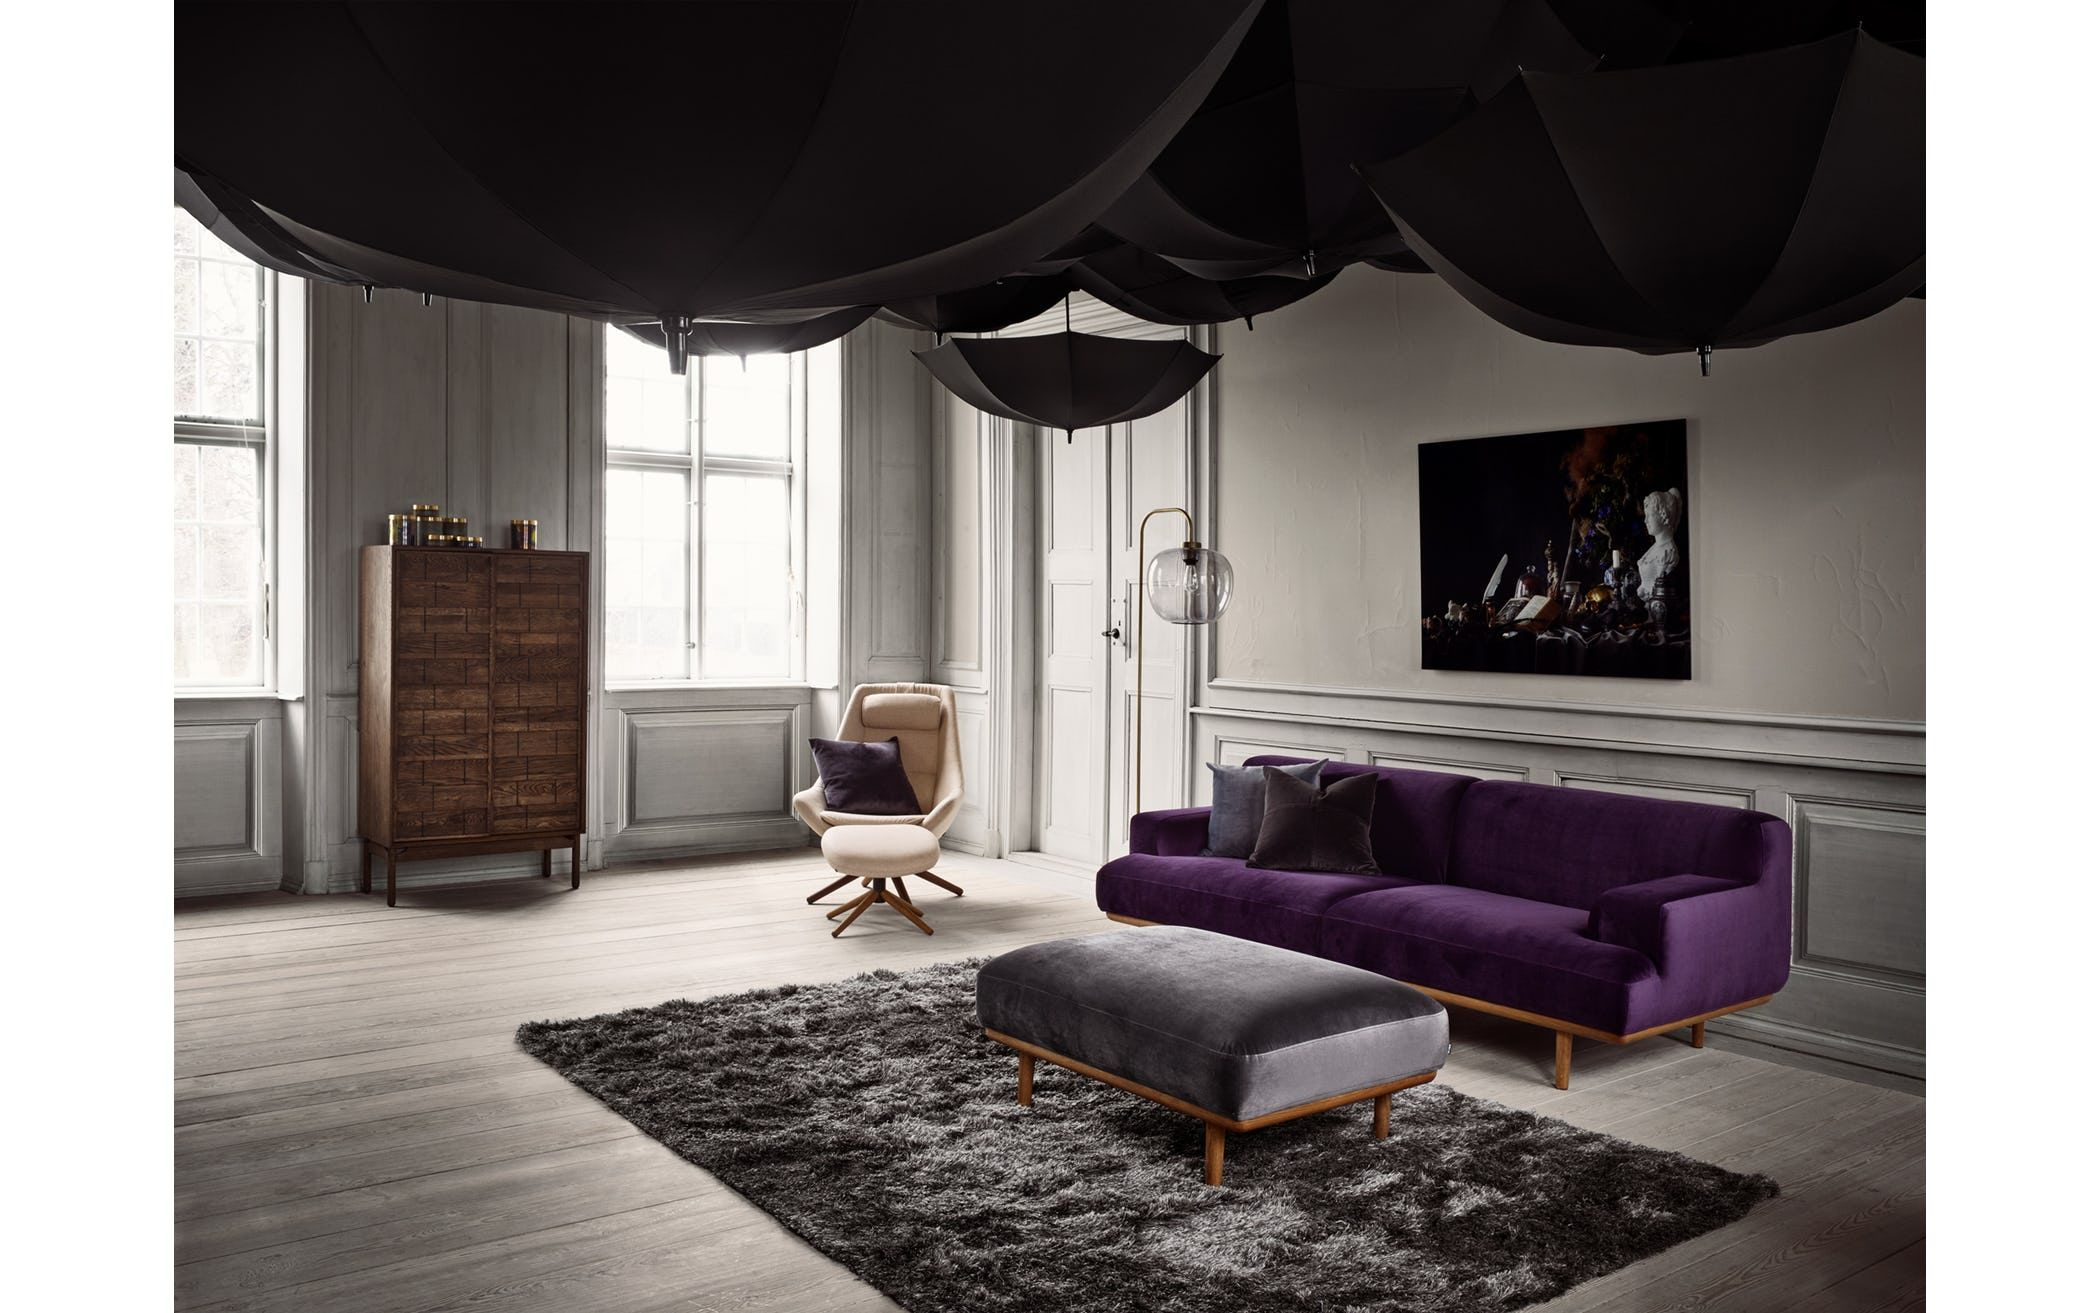 Shop the madison sofa and more contemporary furniture designs by bolia at haute living